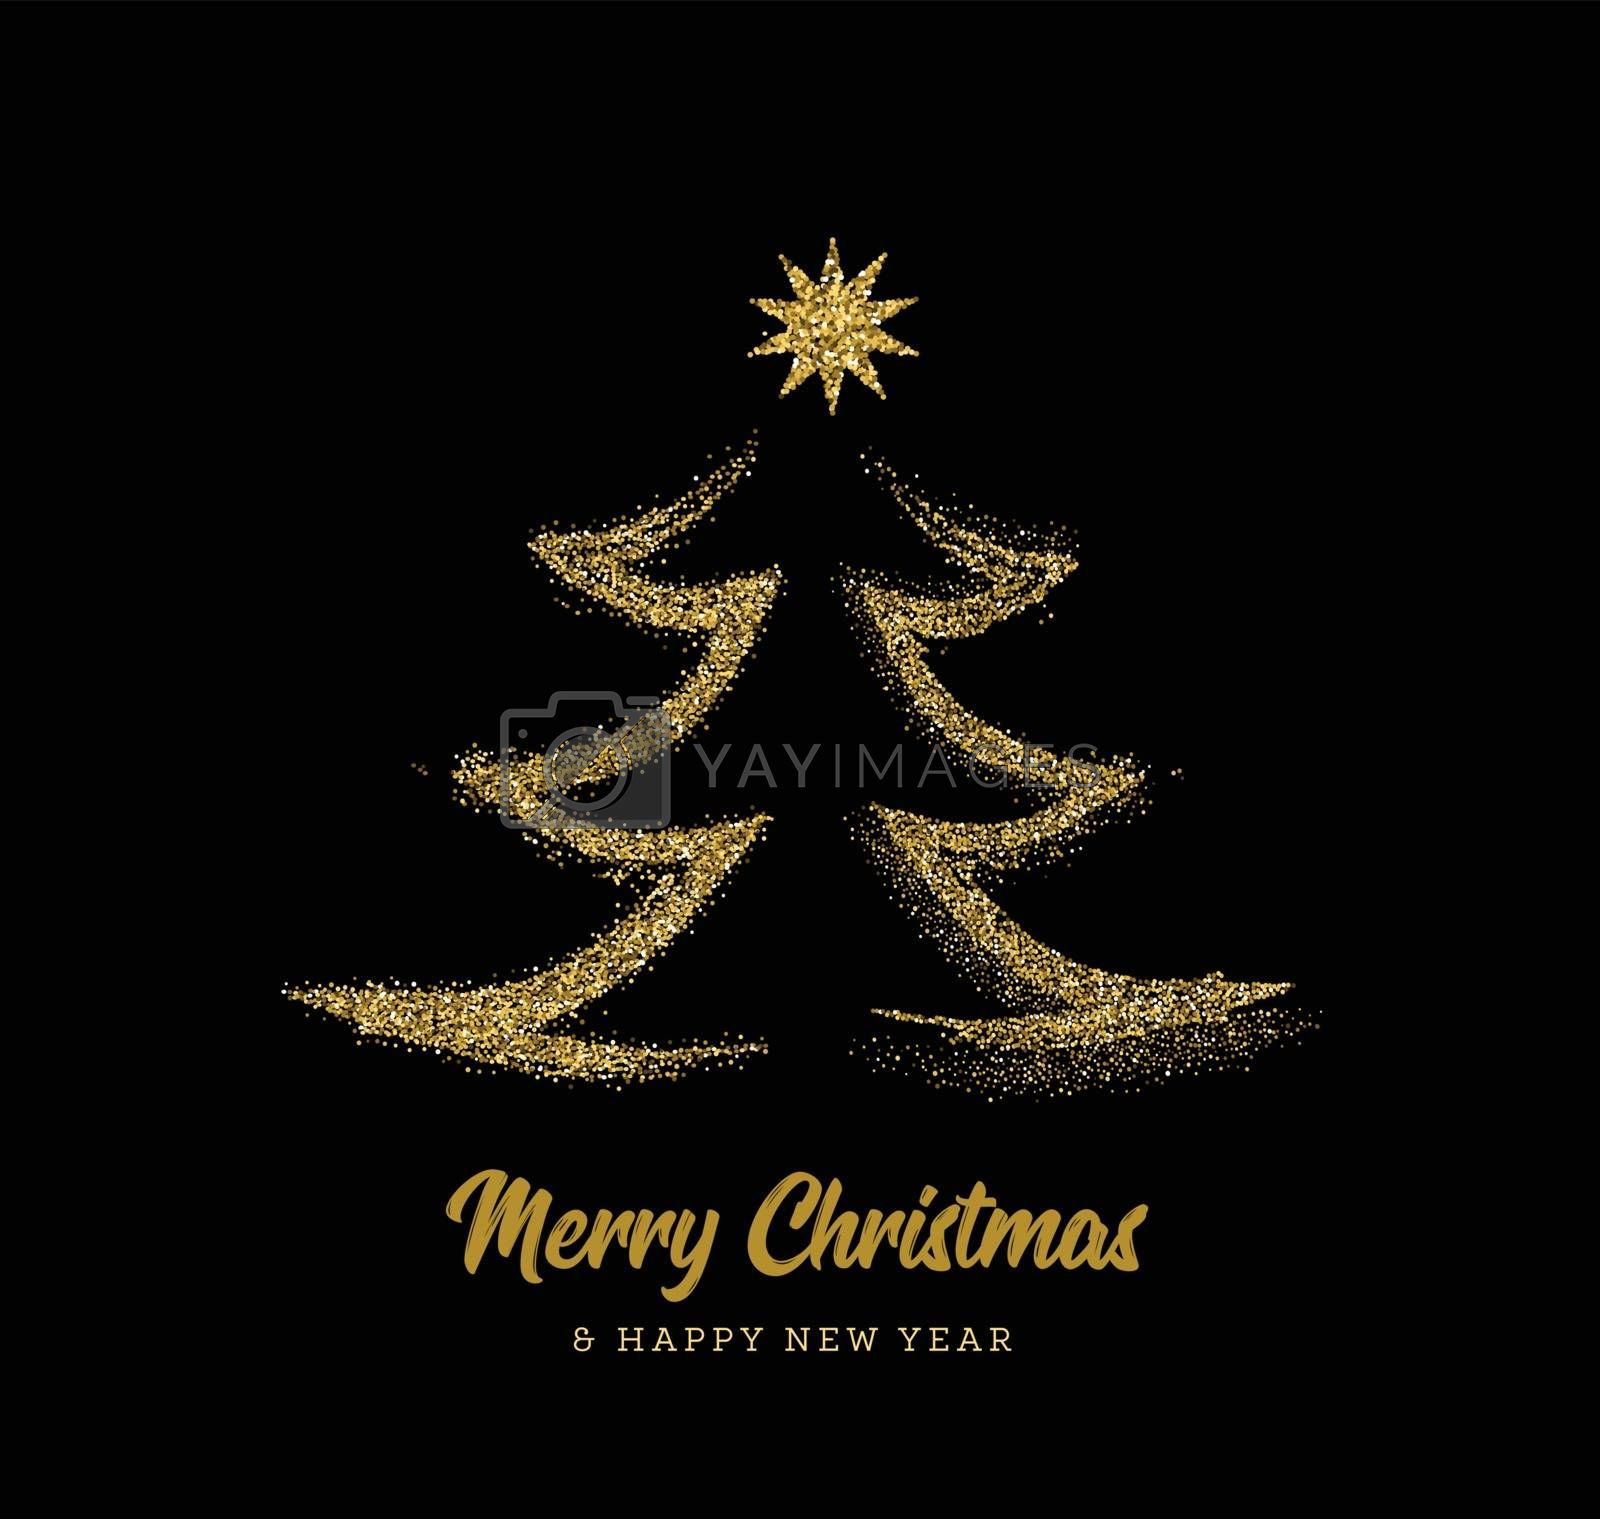 Royalty free image of Silhouette of a Christmas tree in the form of gold sparkles on a black background. Vector by sermax55